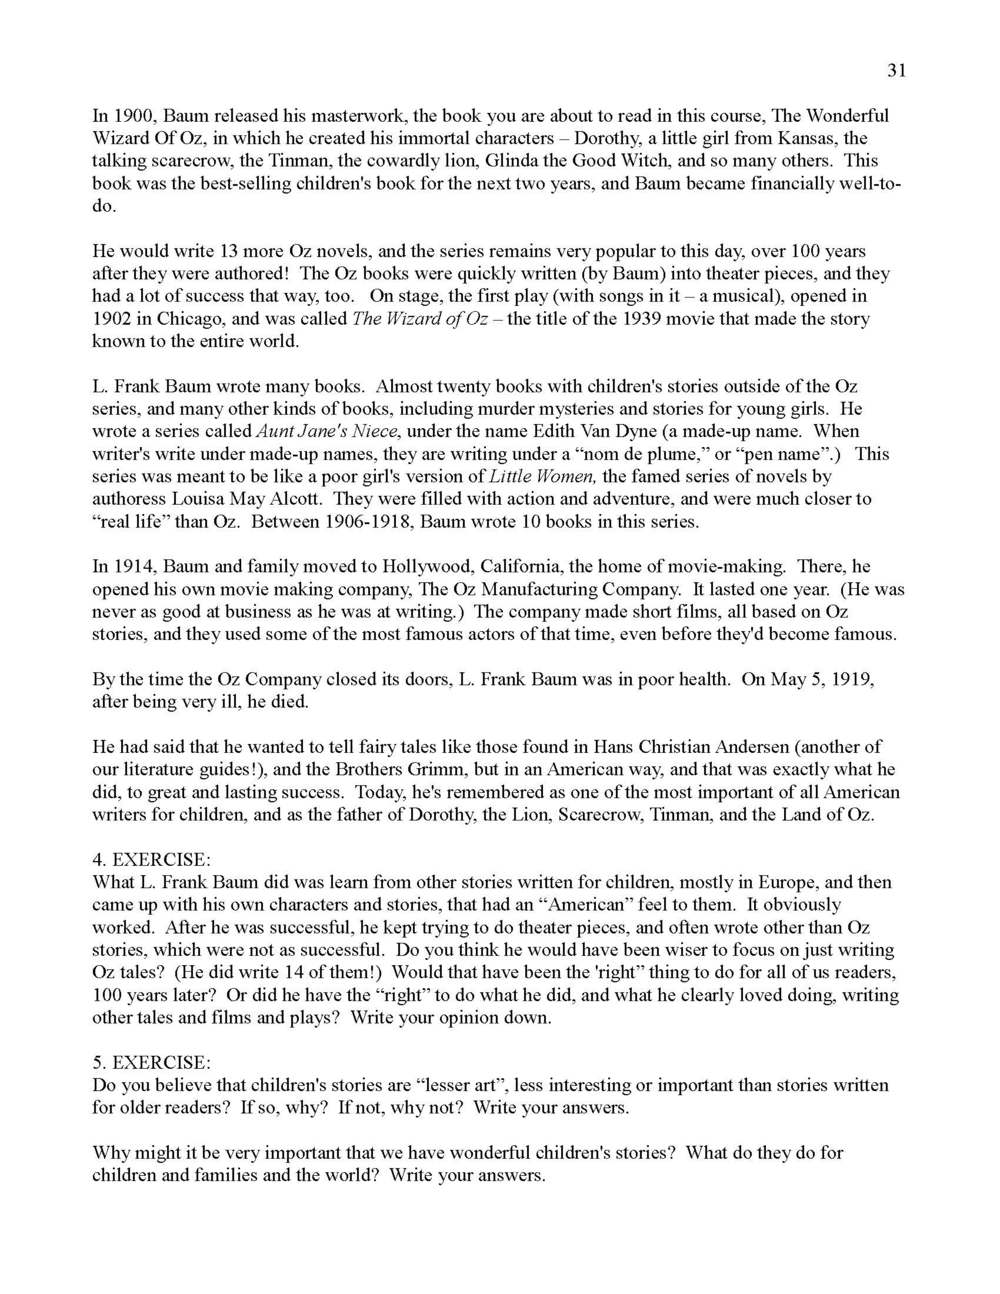 Step 2-3-4 Literature Guide - The Wonderful Wizard of Oz_Page_032.jpg